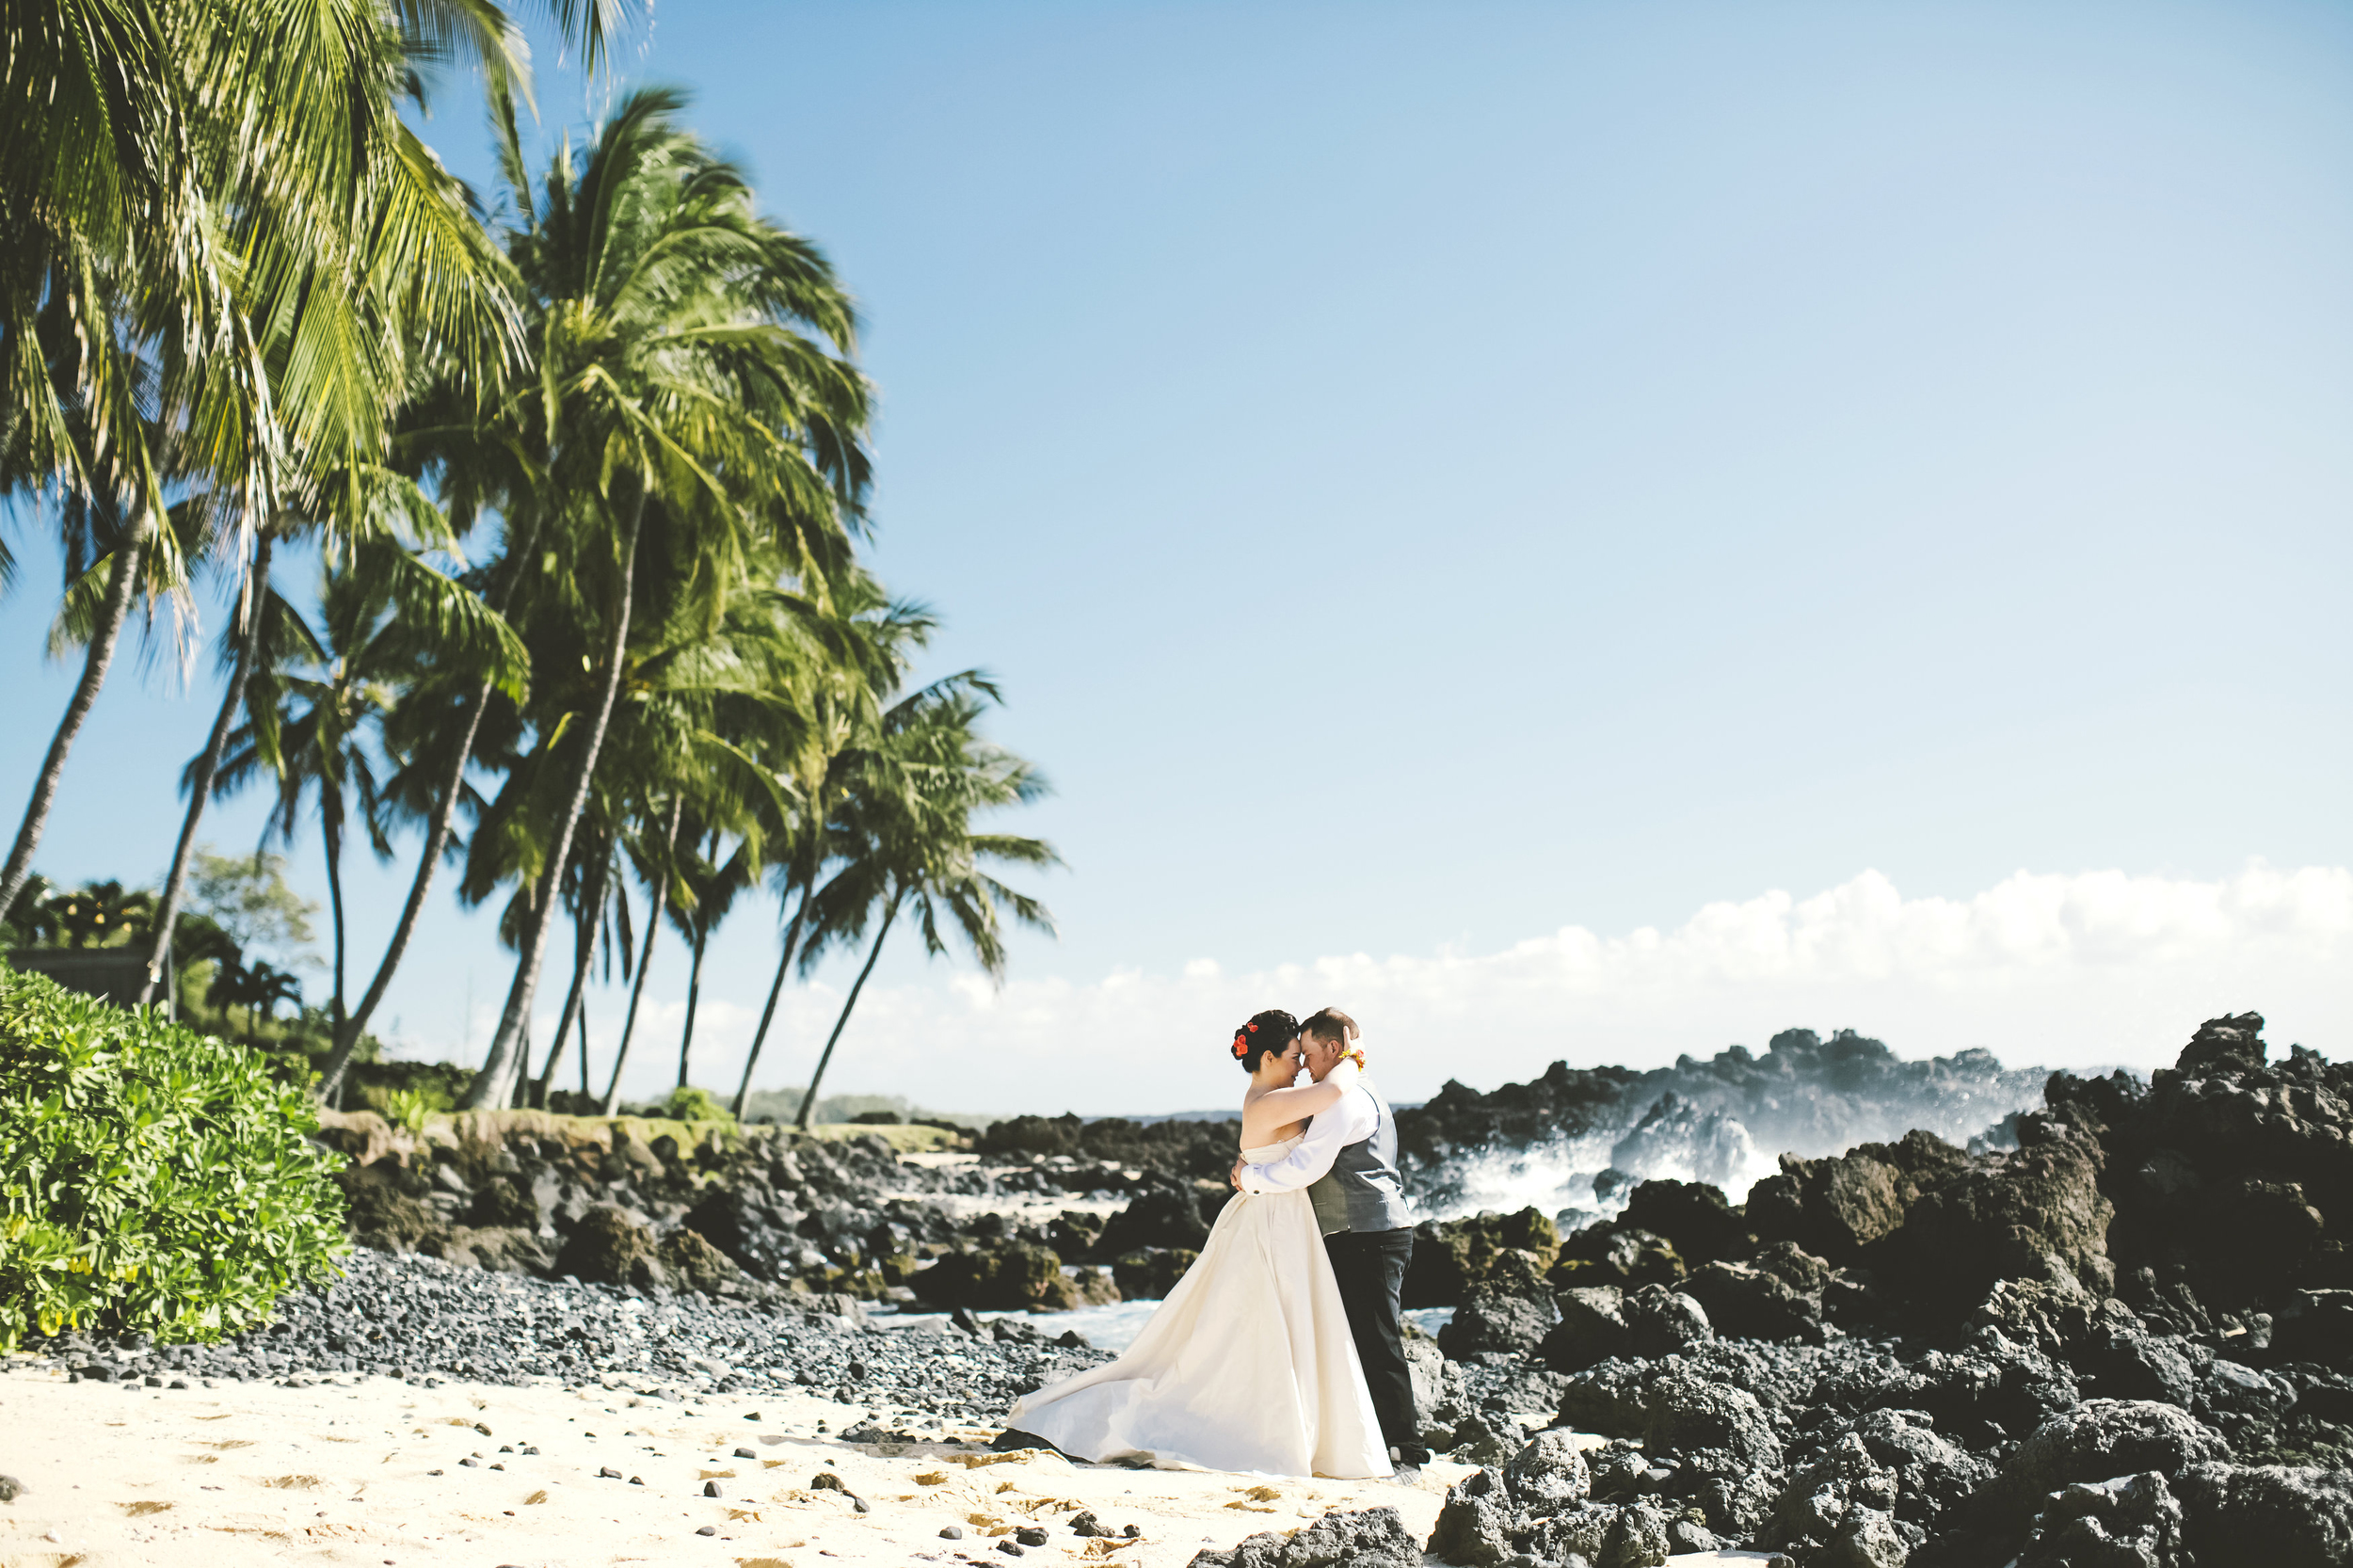 angie-diaz-photography-maui-elopement-29.jpg